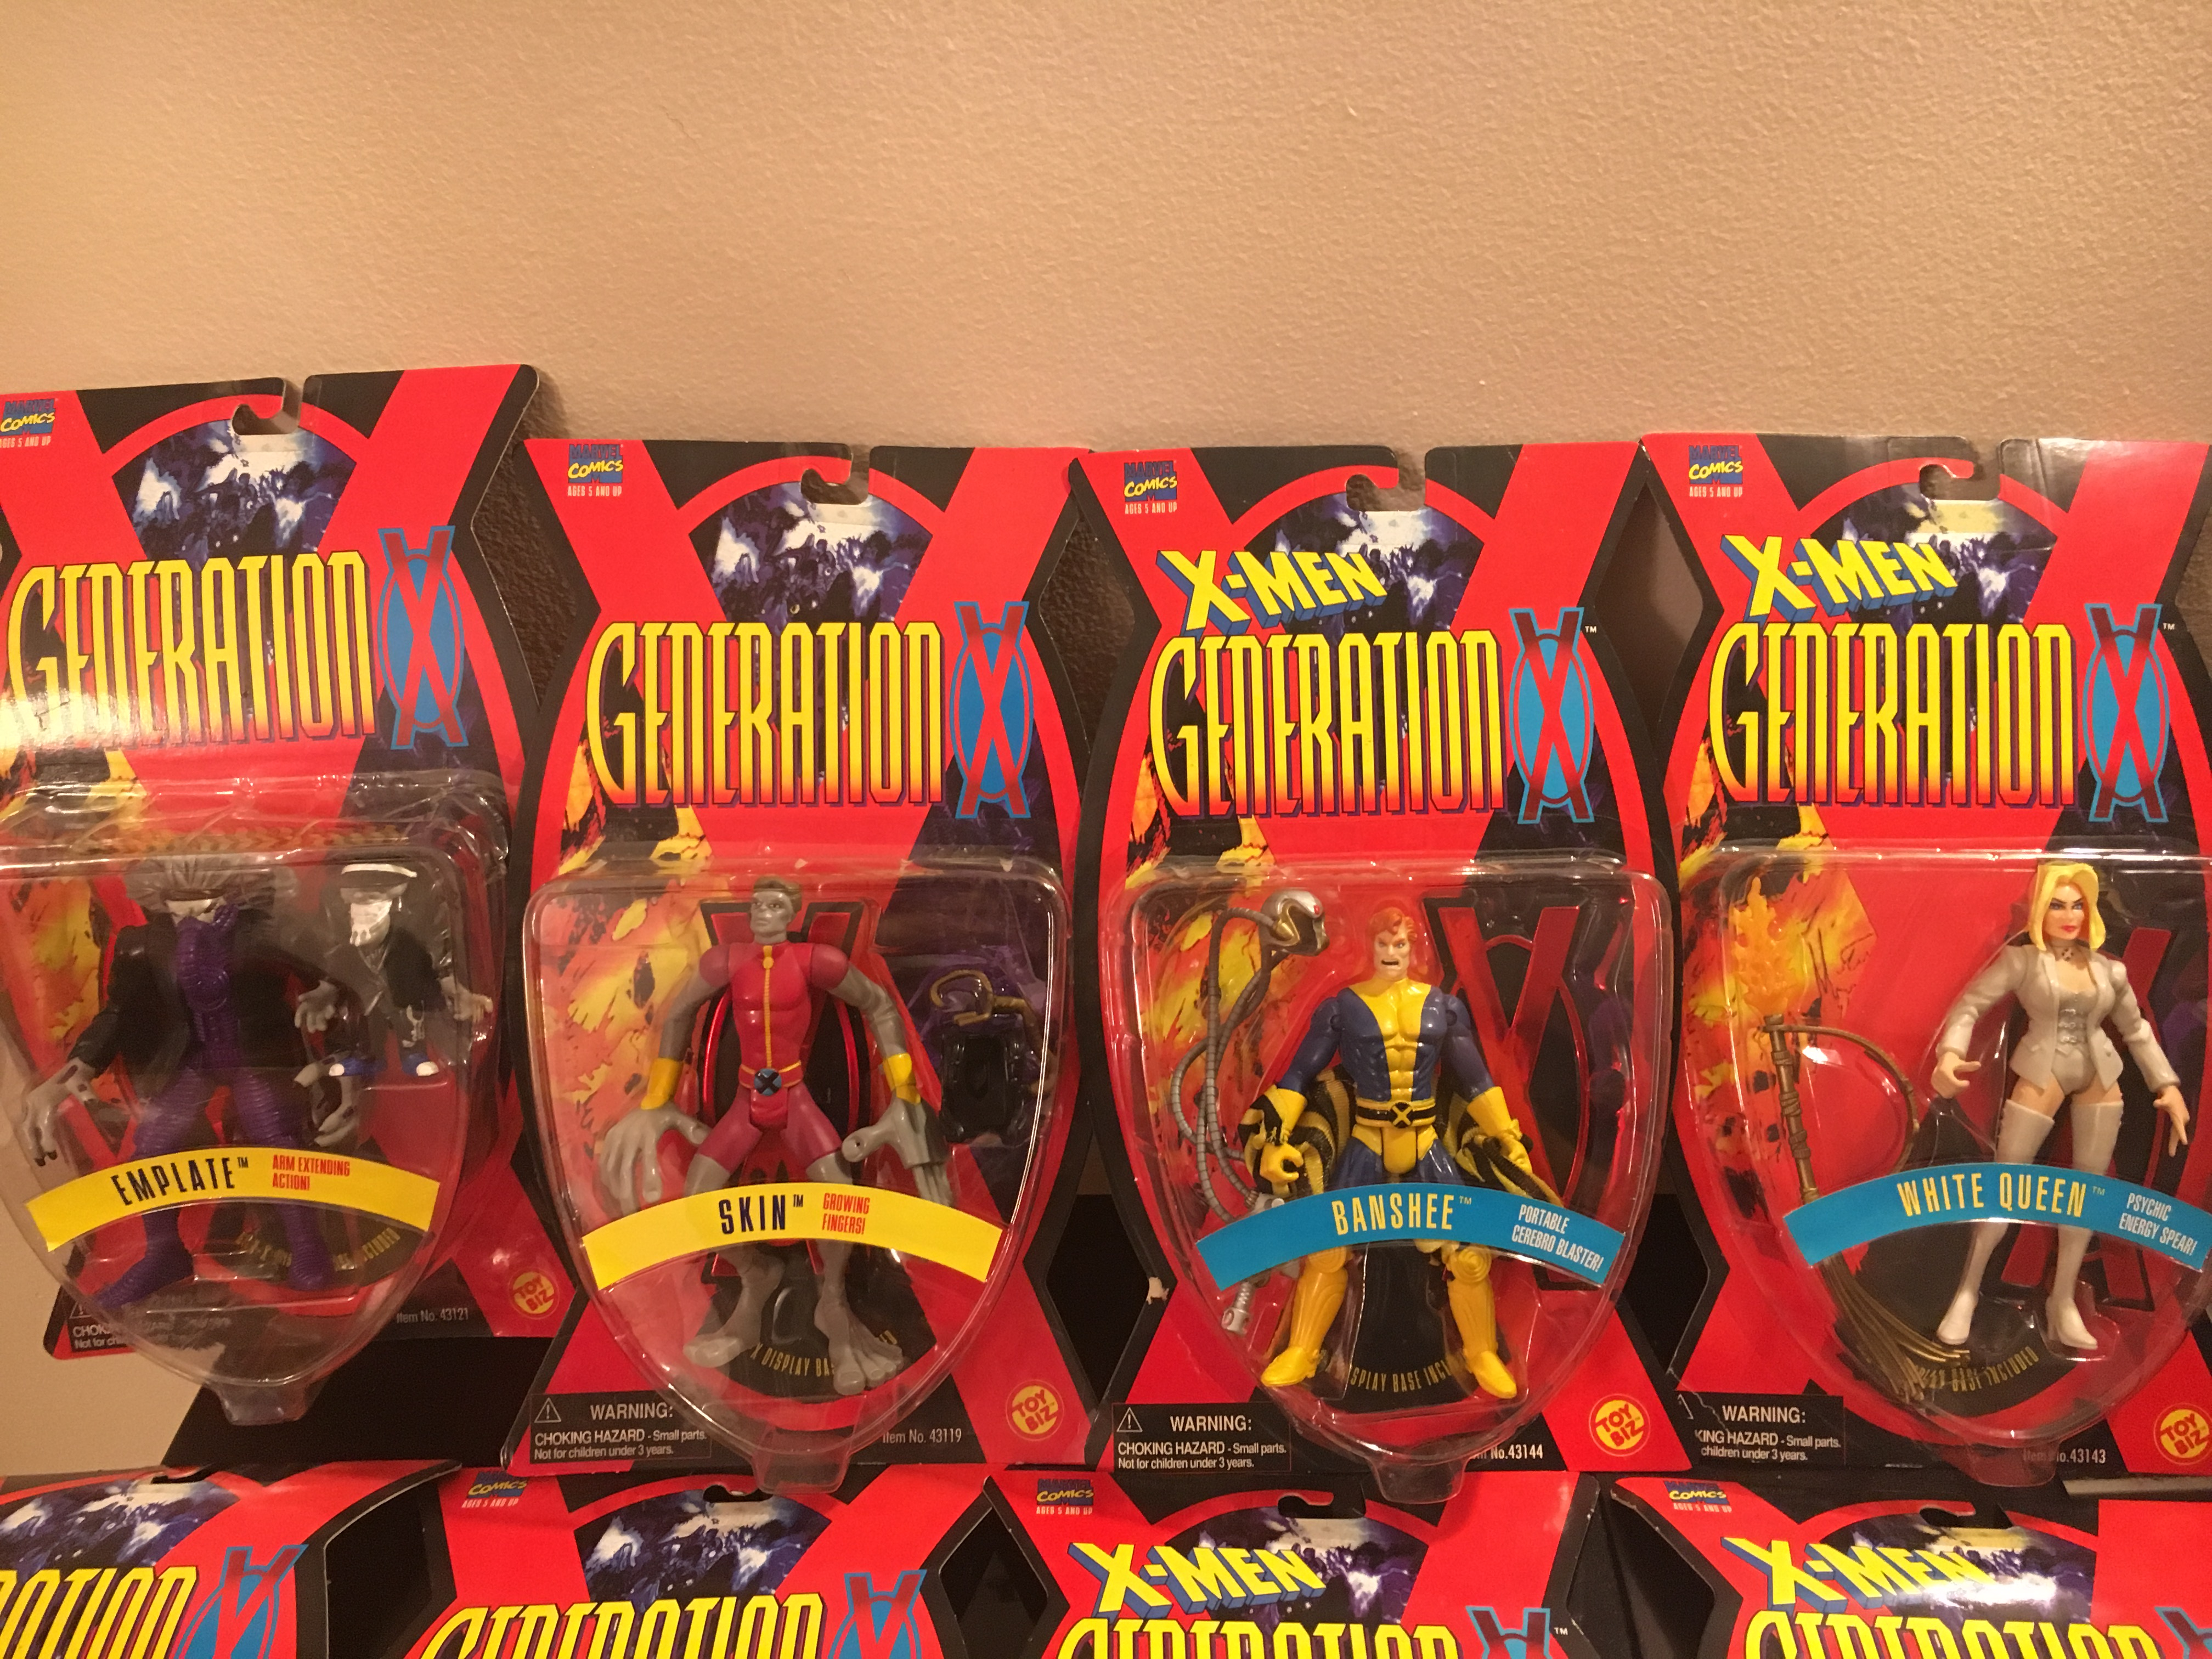 X-Men Generation X COMPLETE Collectible Set  Toy Biz, Inc. 035112431213; 035112431190; 035112431442; 03511243